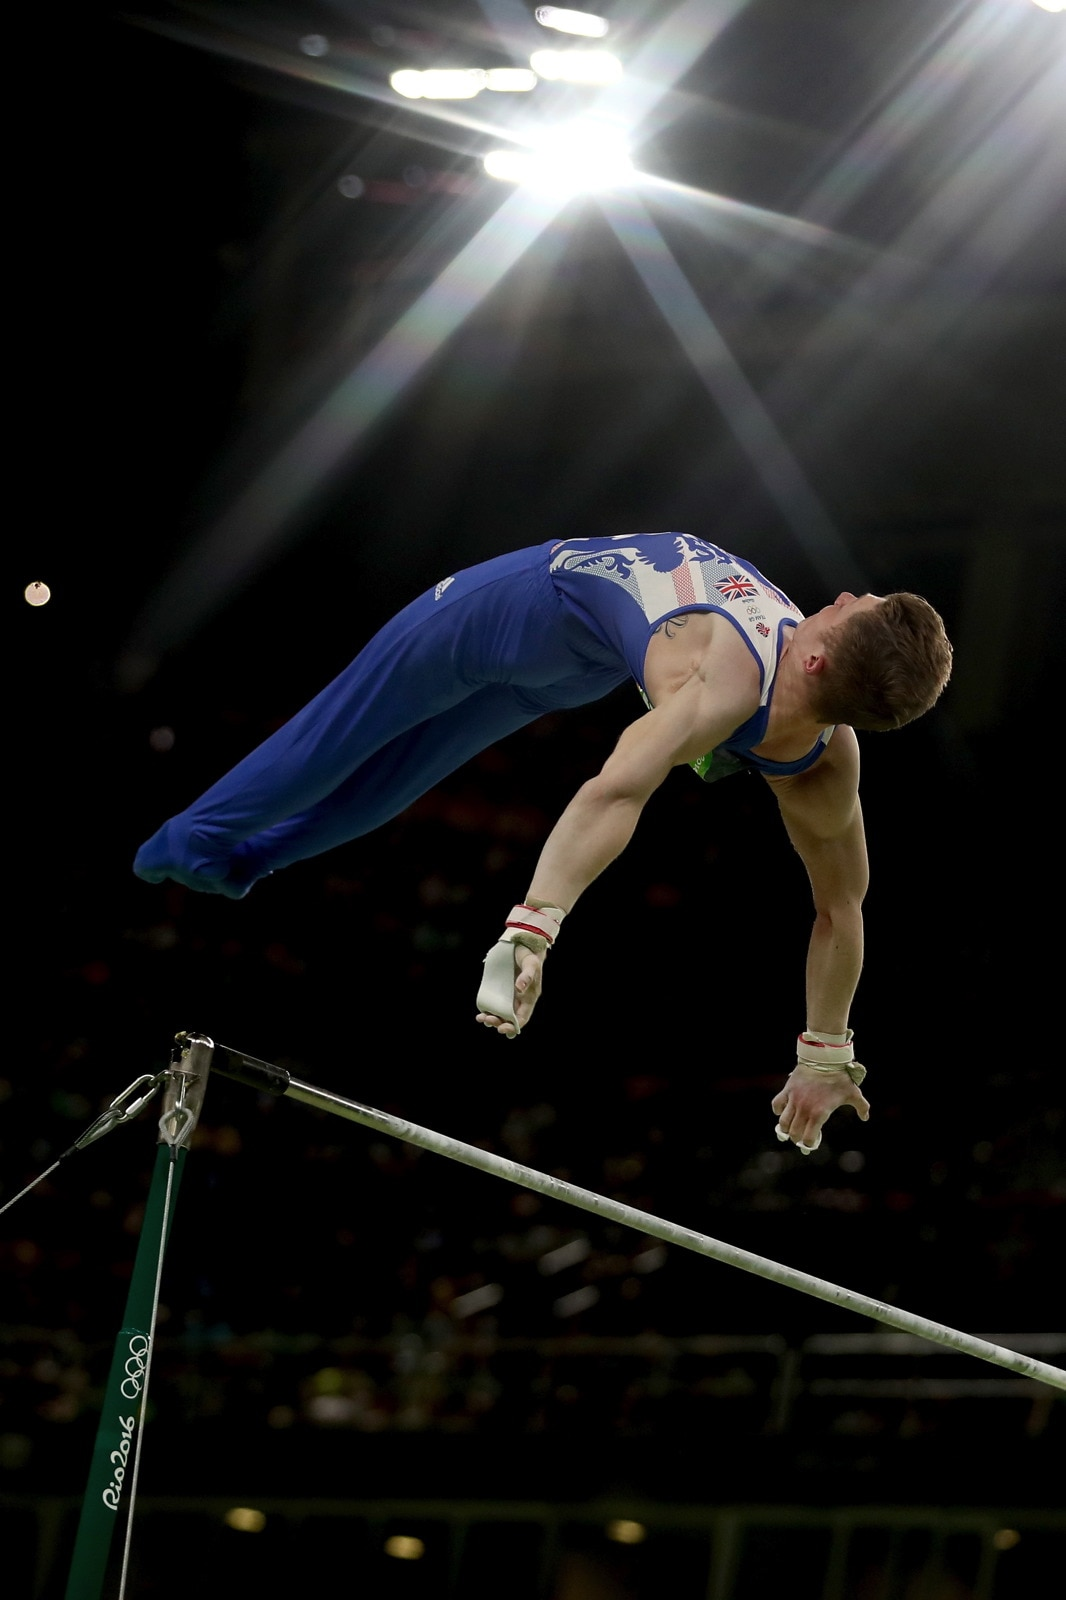 Gymnastic Artistics - Horizontal Bars Men